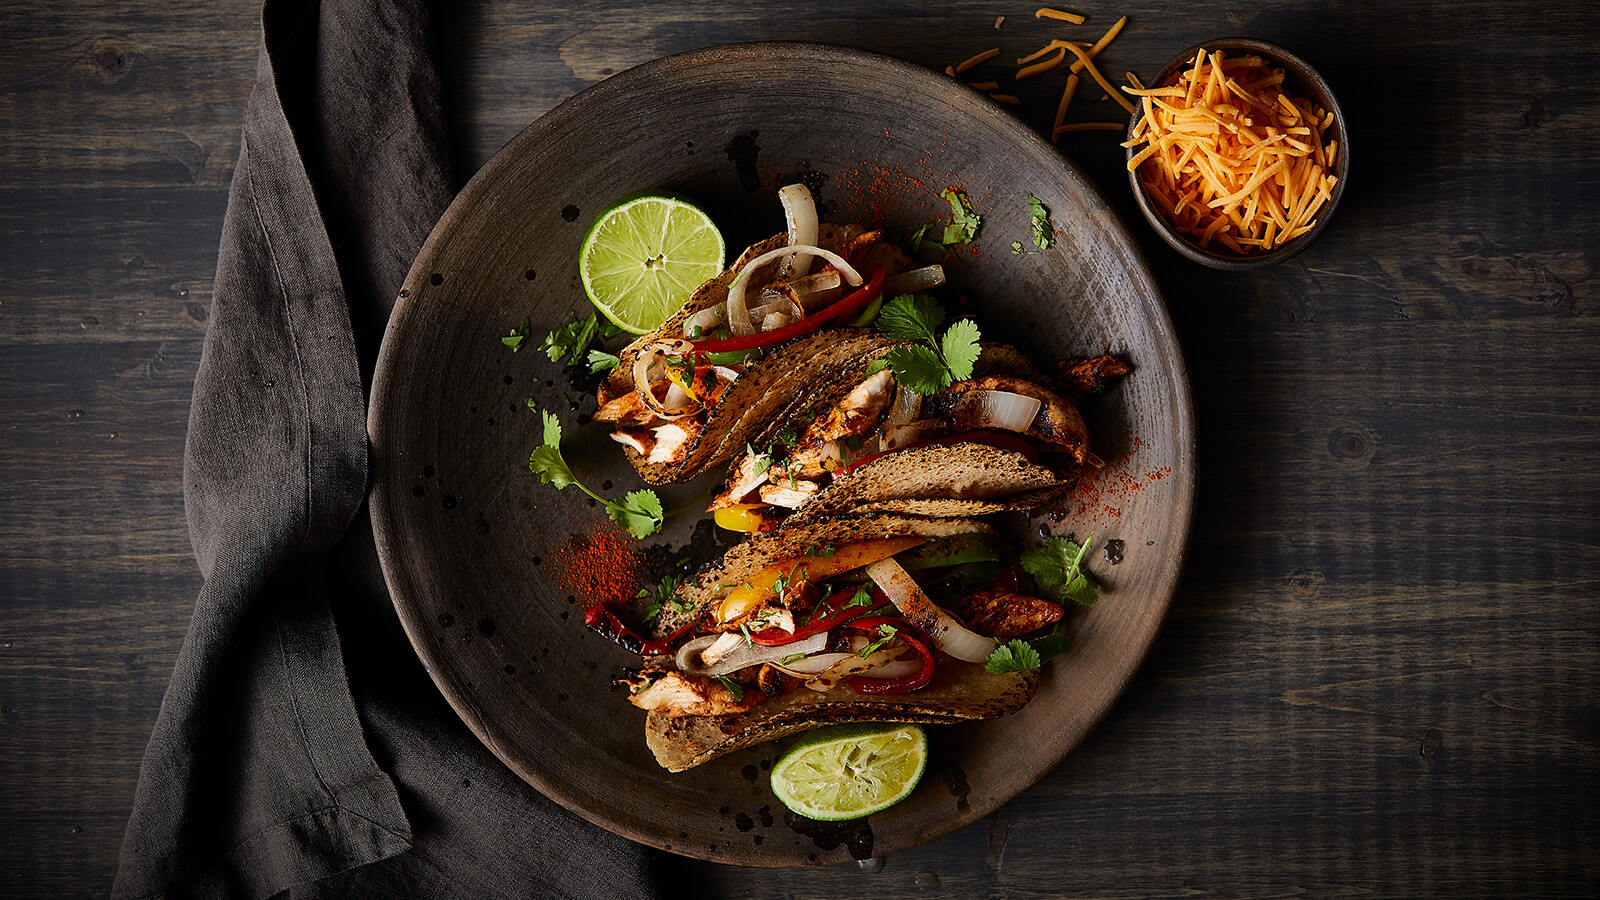 Southwest Chicken Fajitas